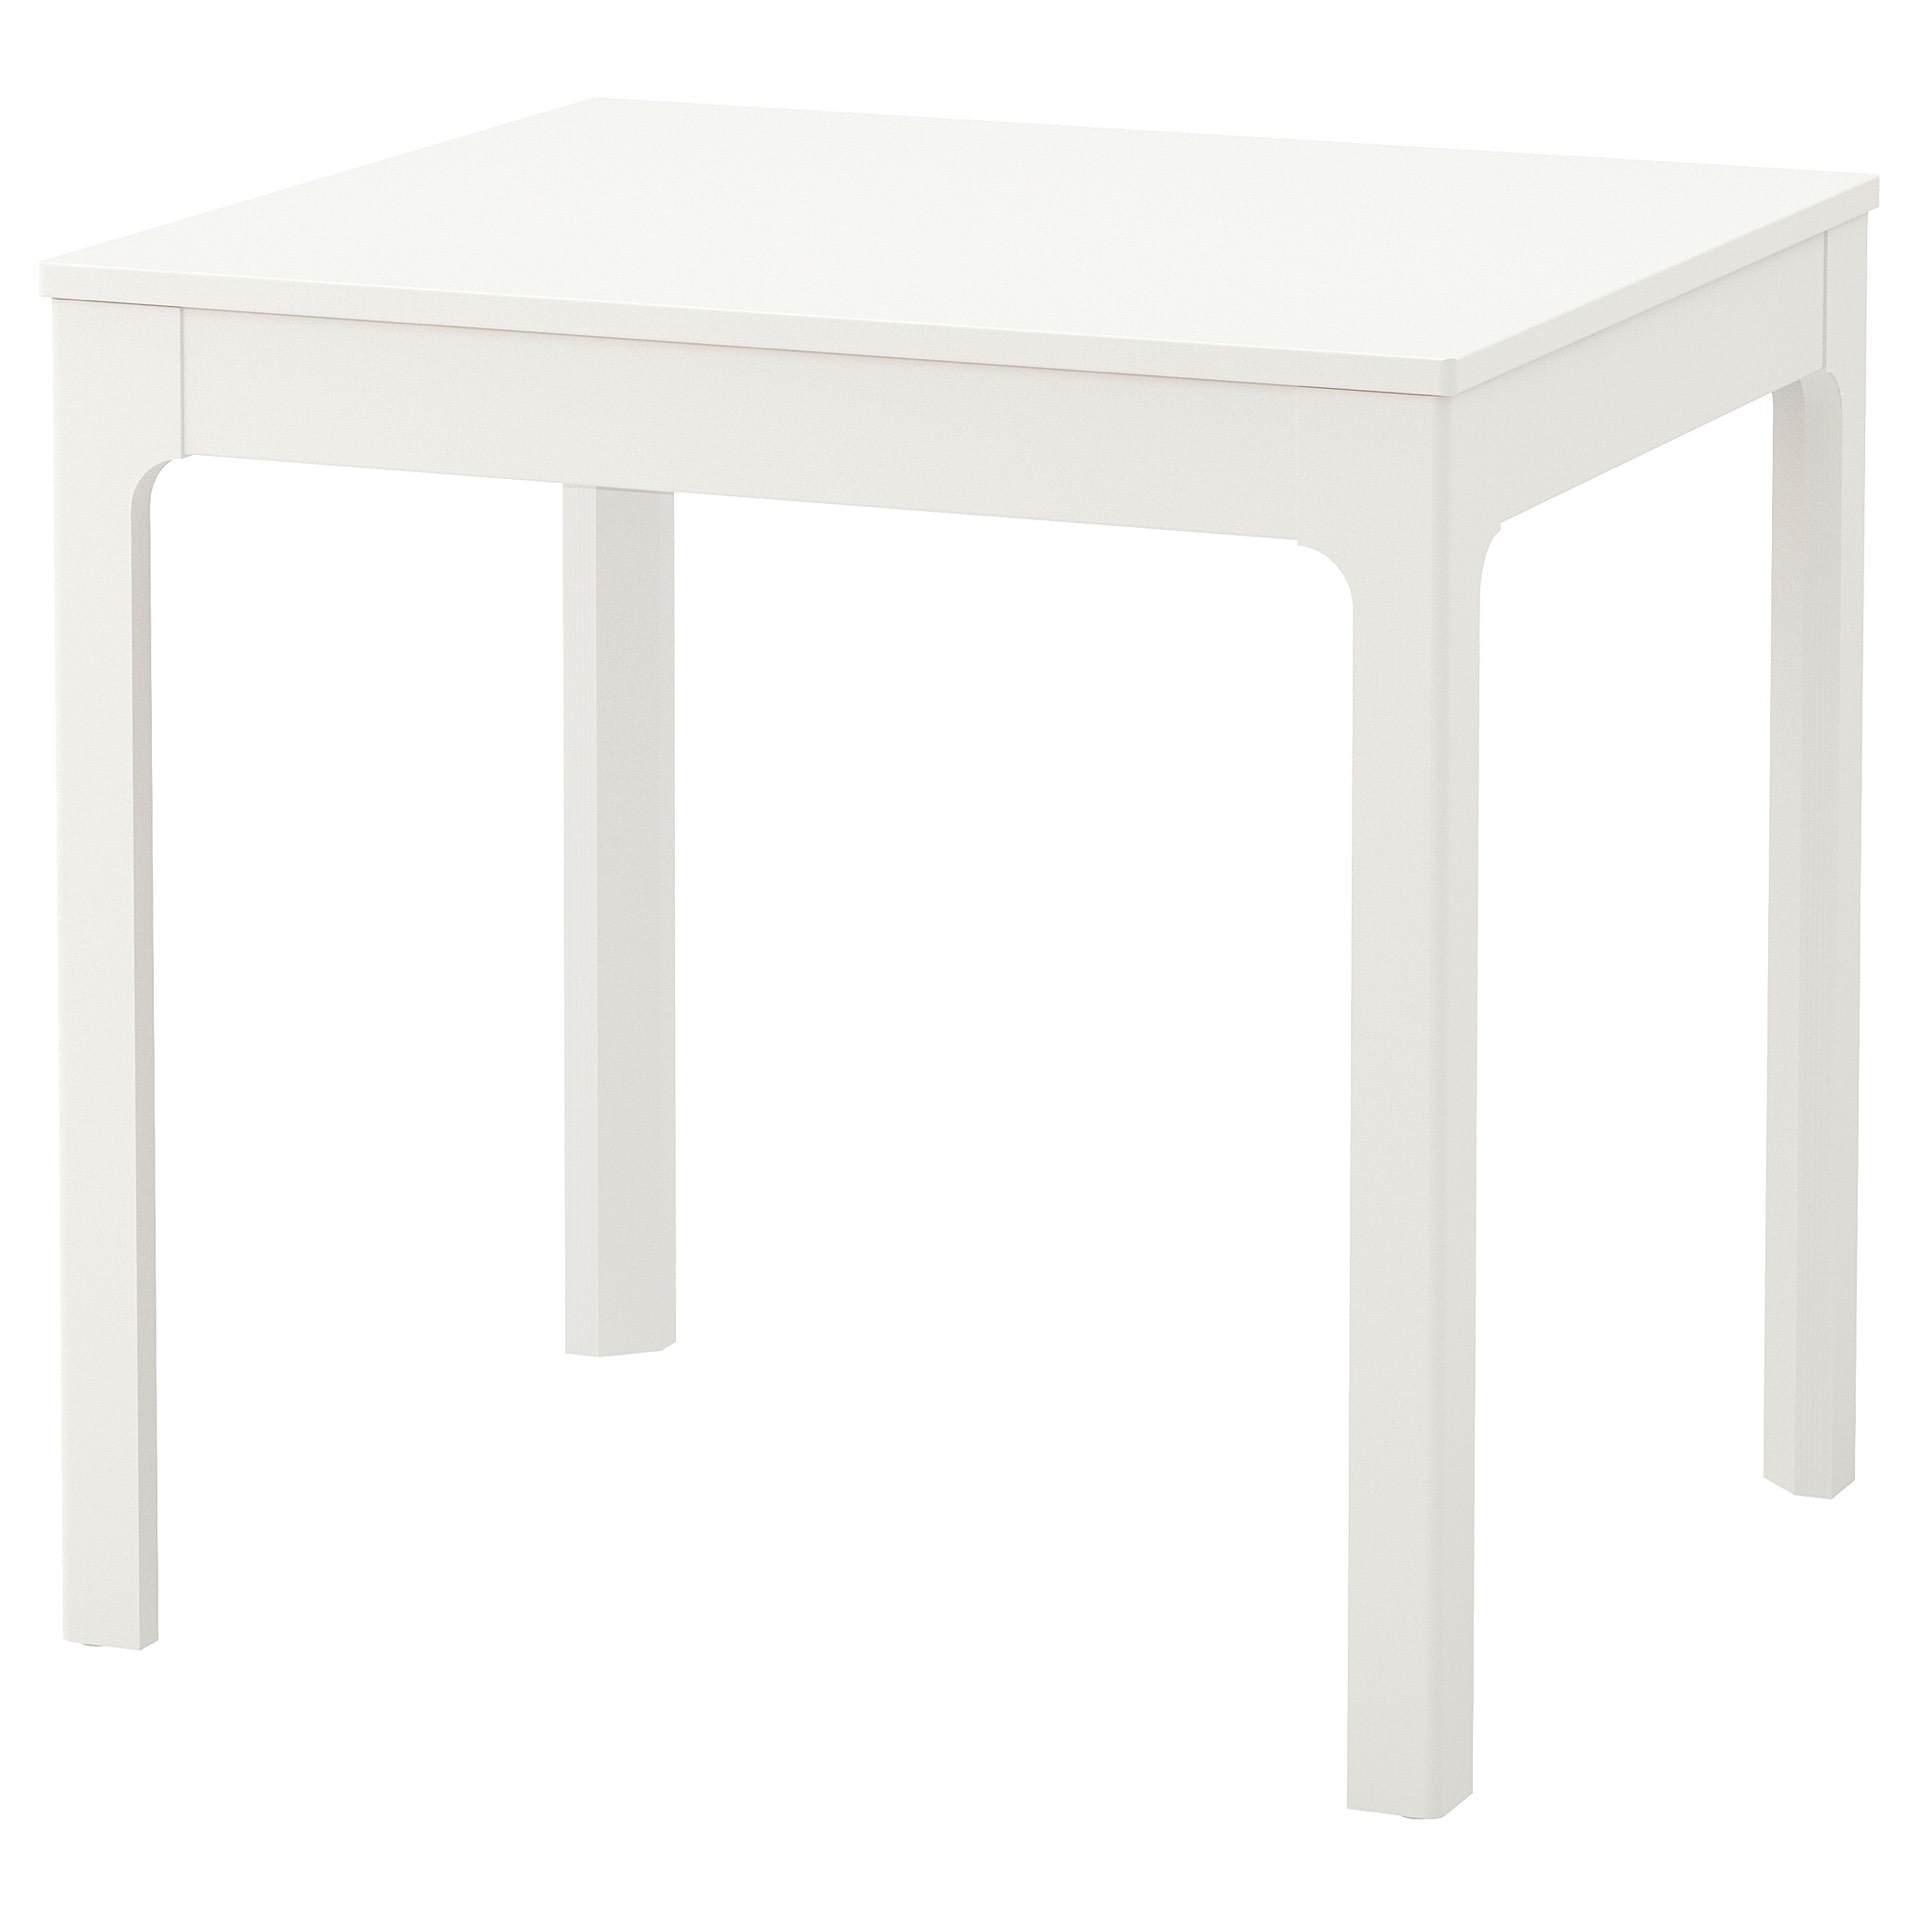 EKEDALEN extendable table. ($119 for the smallest version)